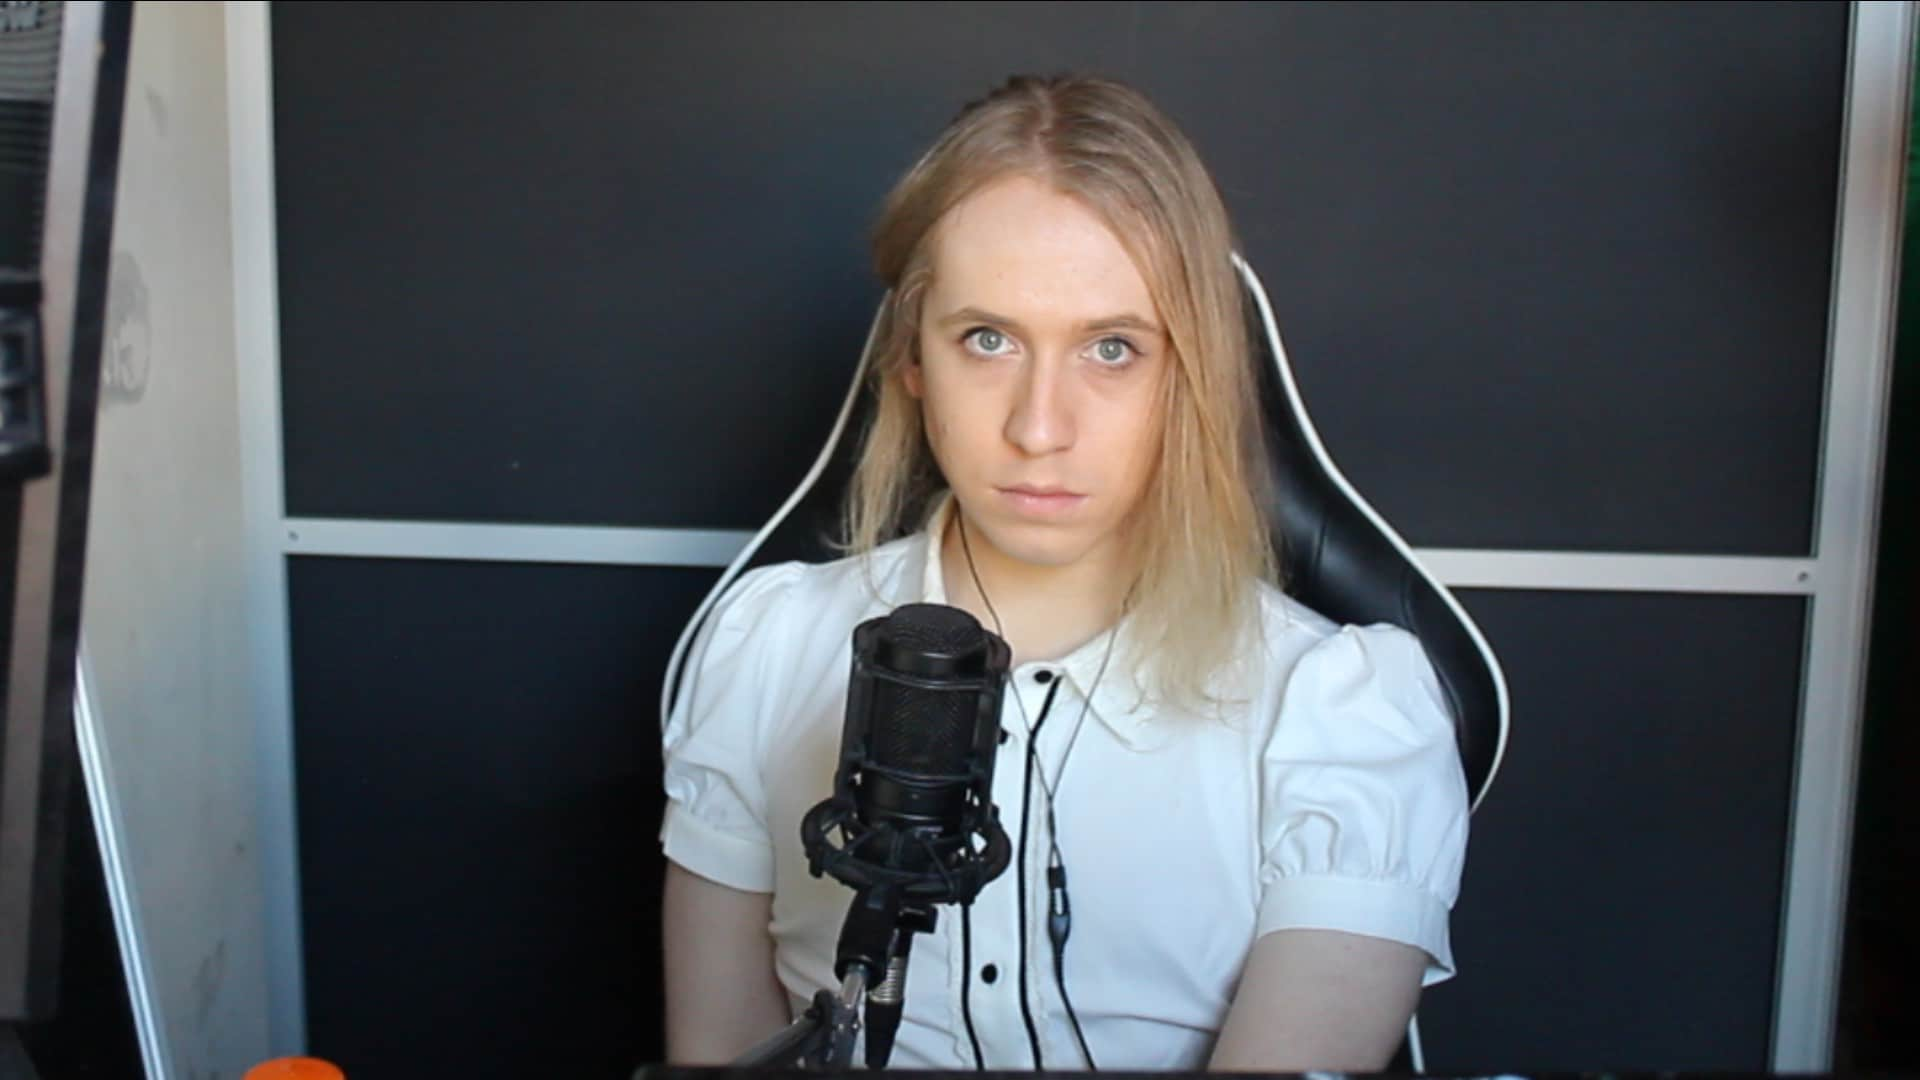 Trans esports commentator posts defiant video message after livestream 'toxicity'